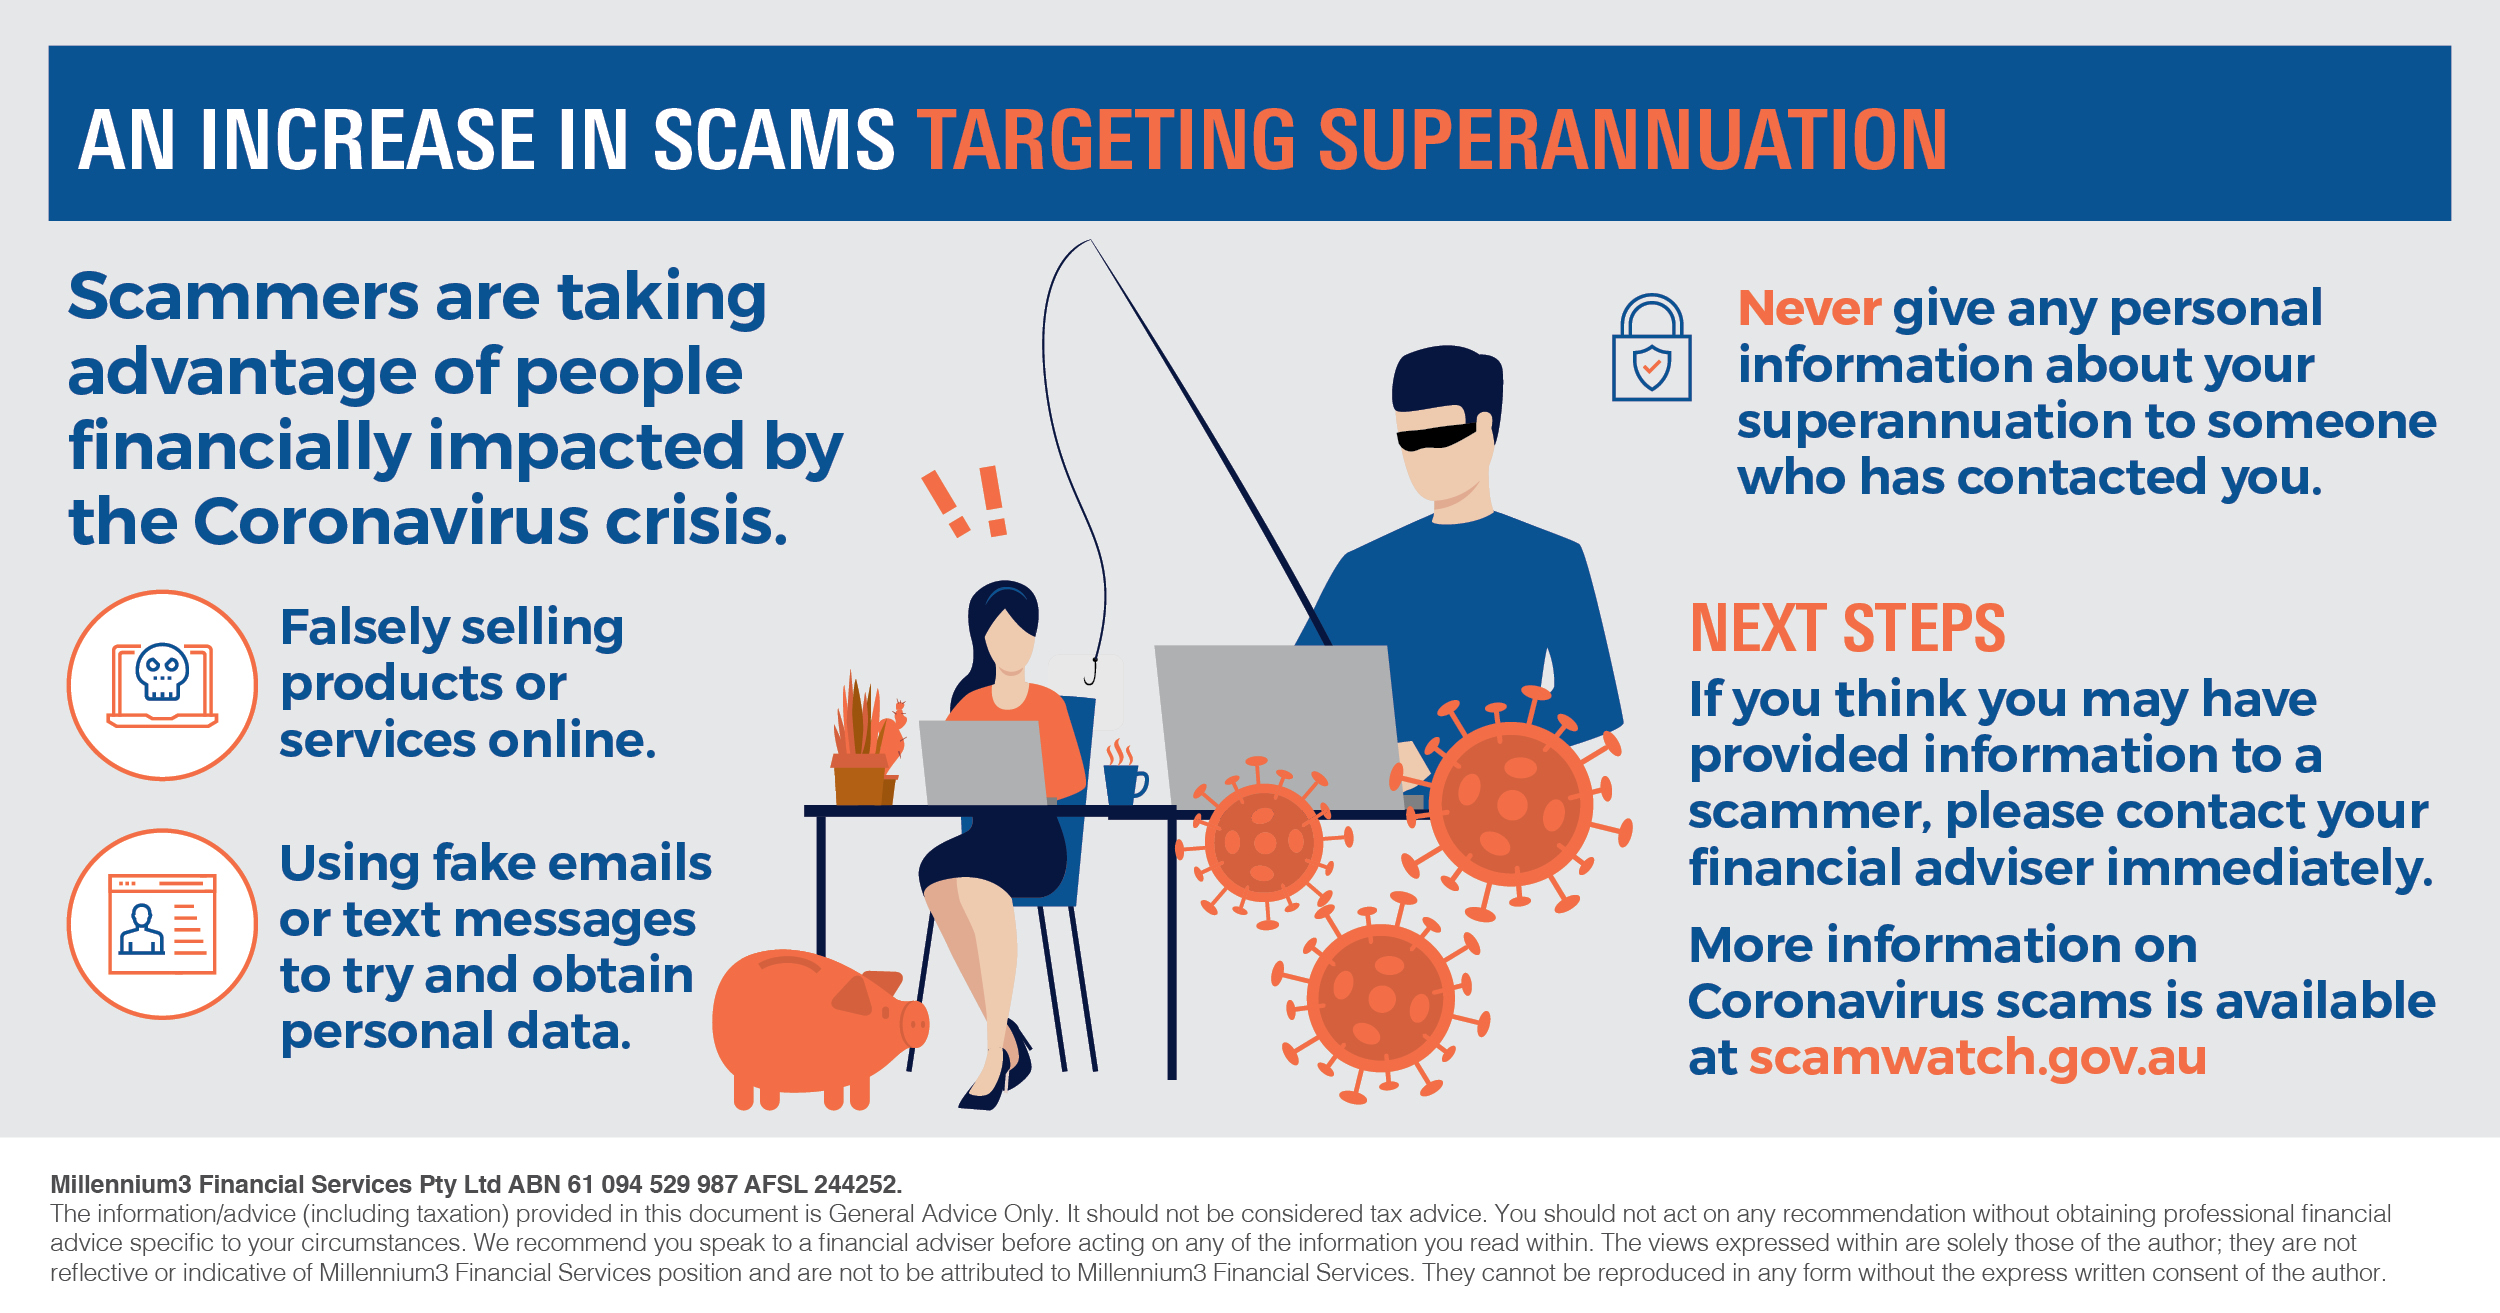 Infographic_An increase in scams targeting superannuation_M3